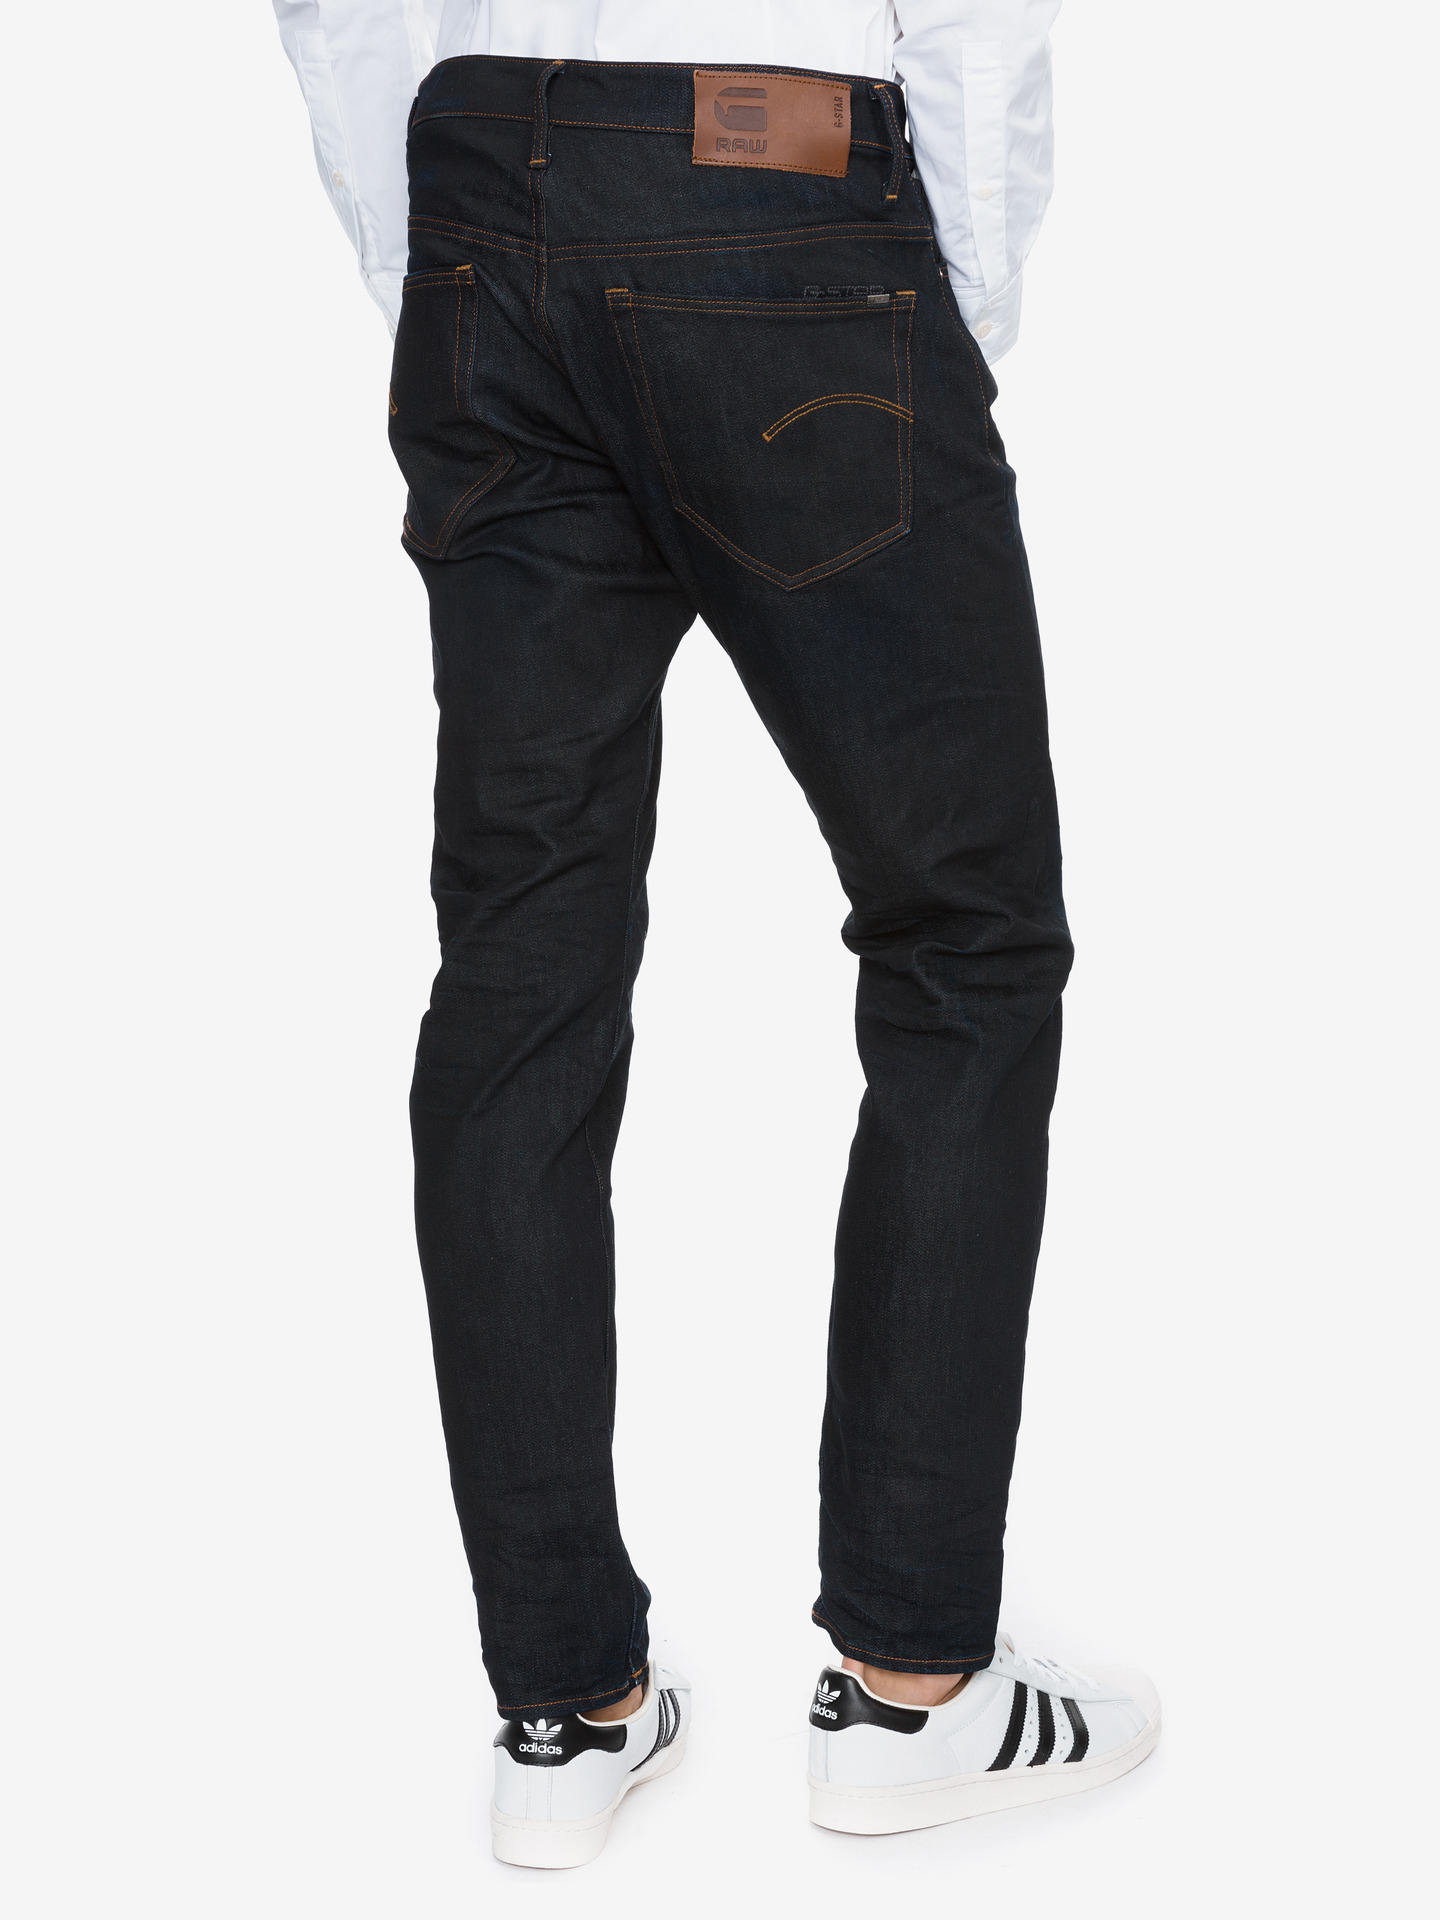 3301 Jeans G-Star RAW (2)